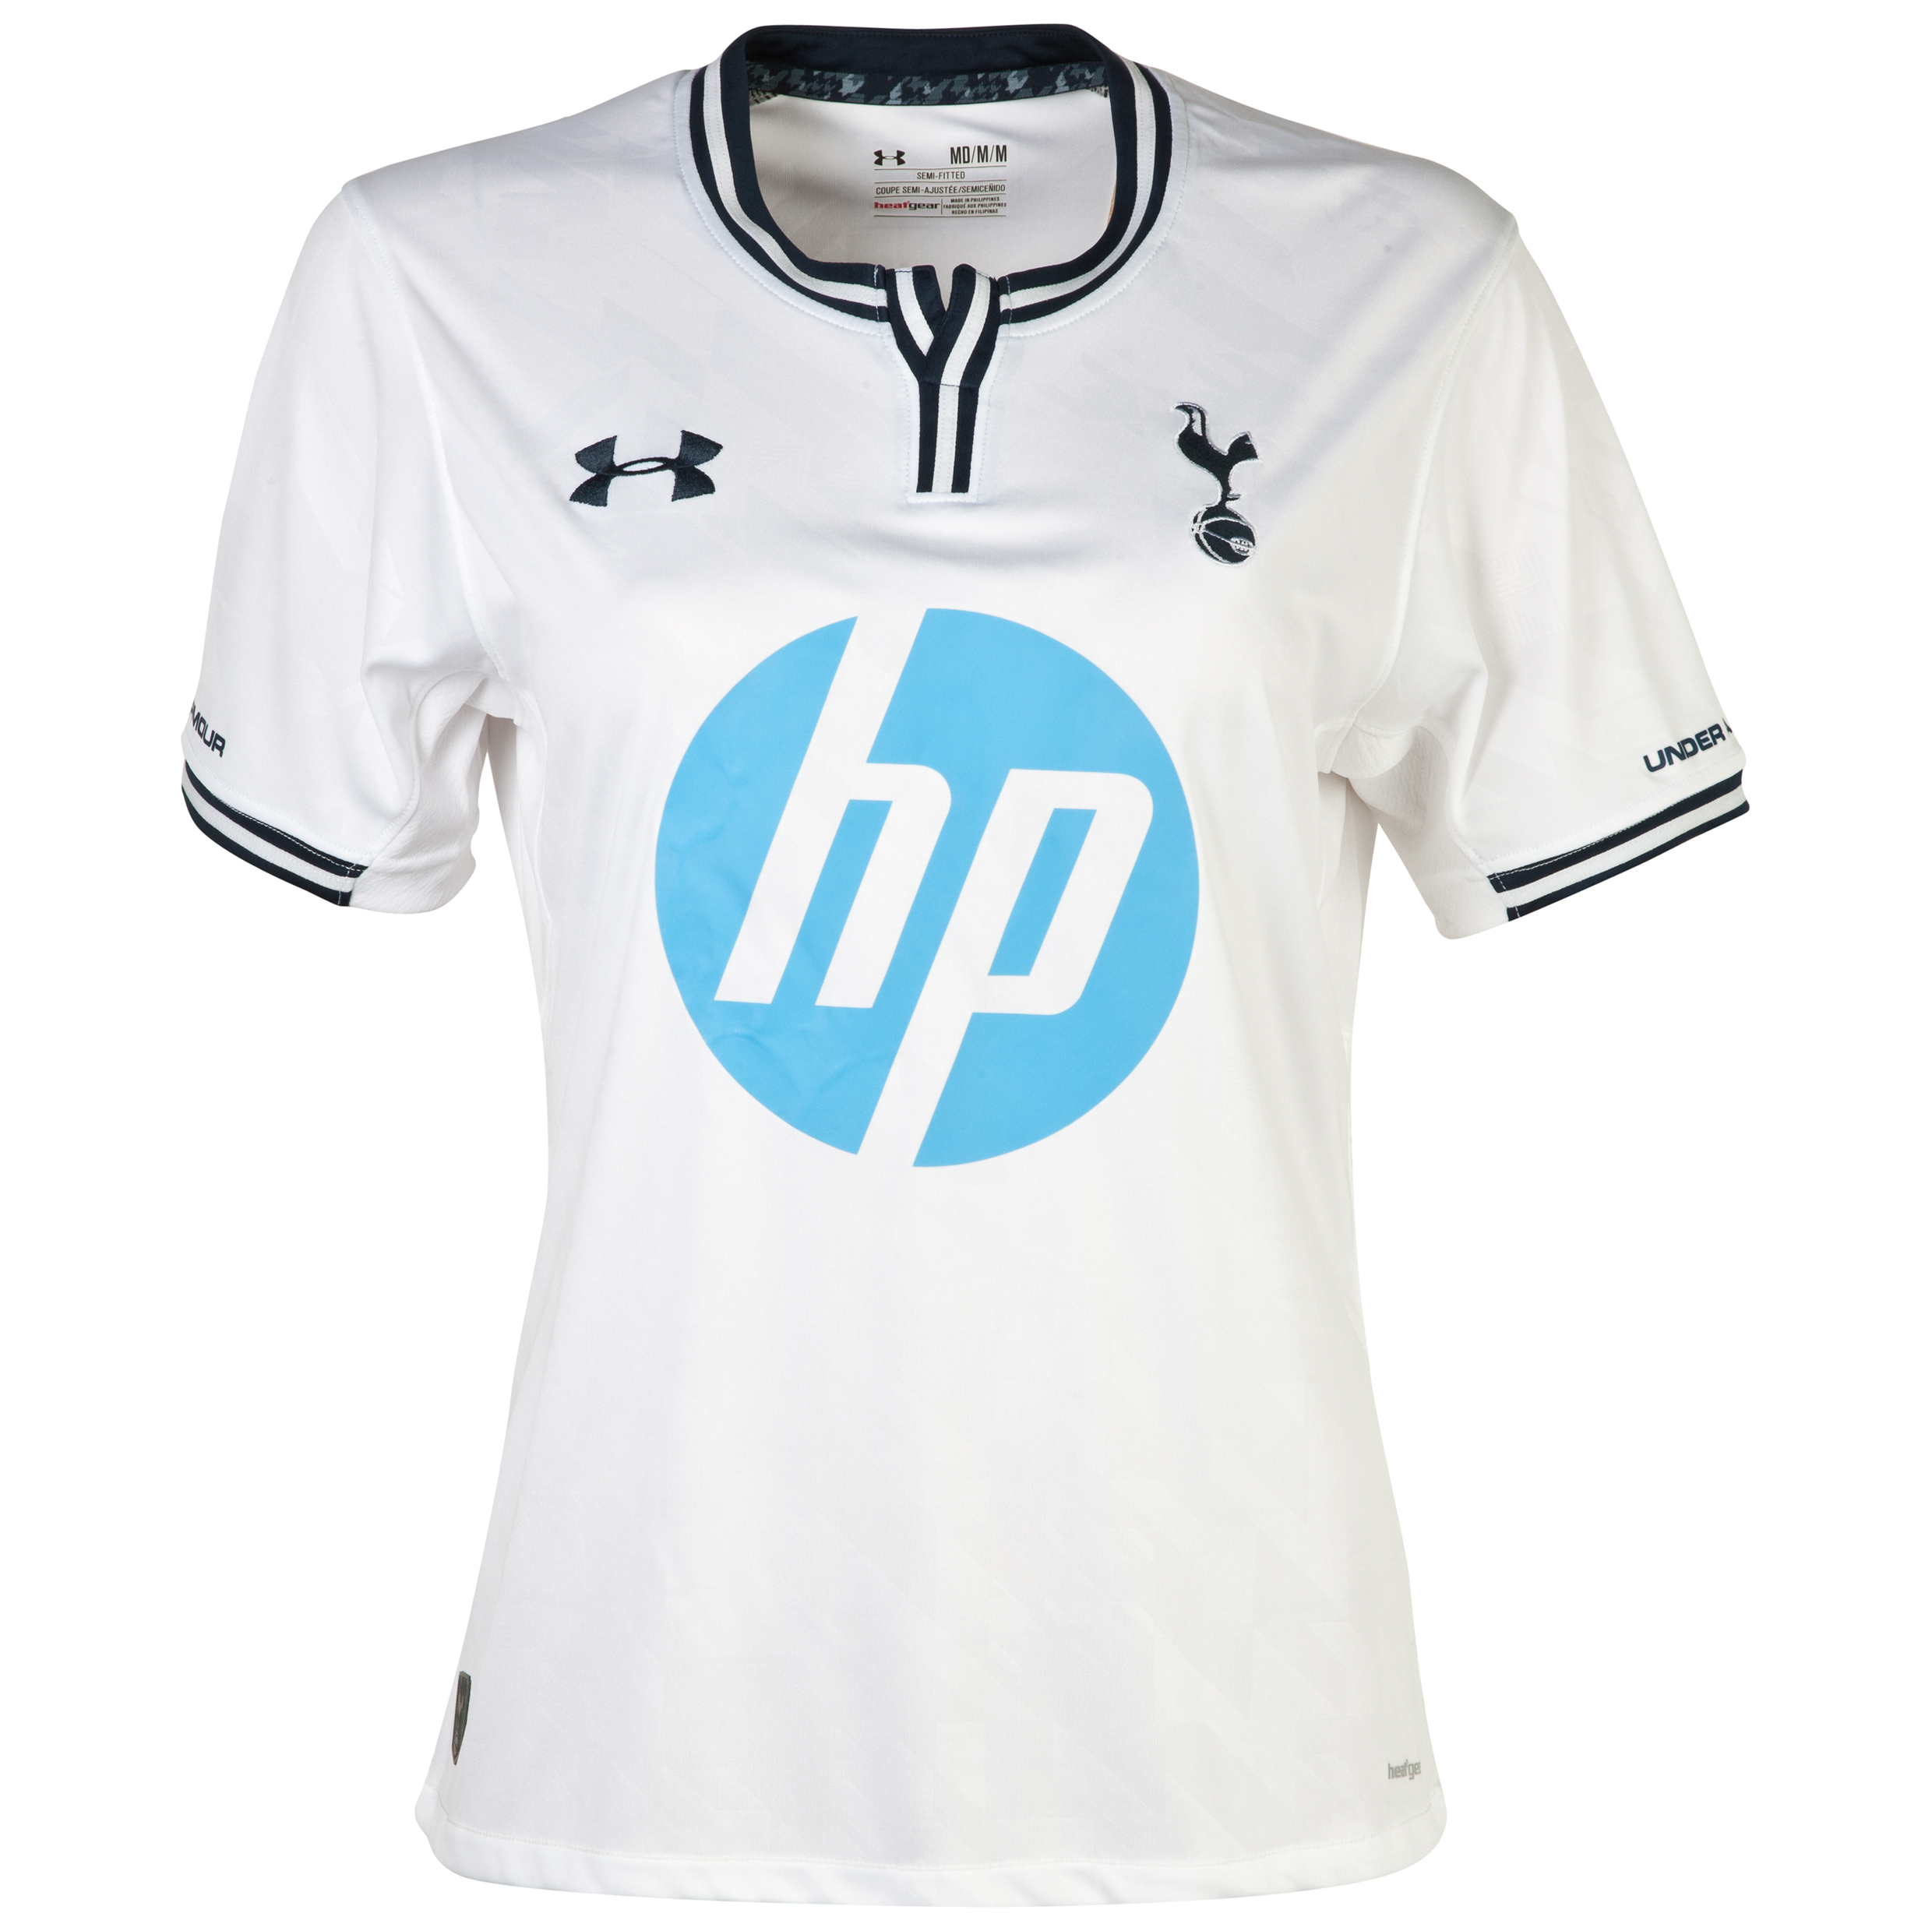 Tottenham Hotspur Home Shirt 2013/14 - Womens